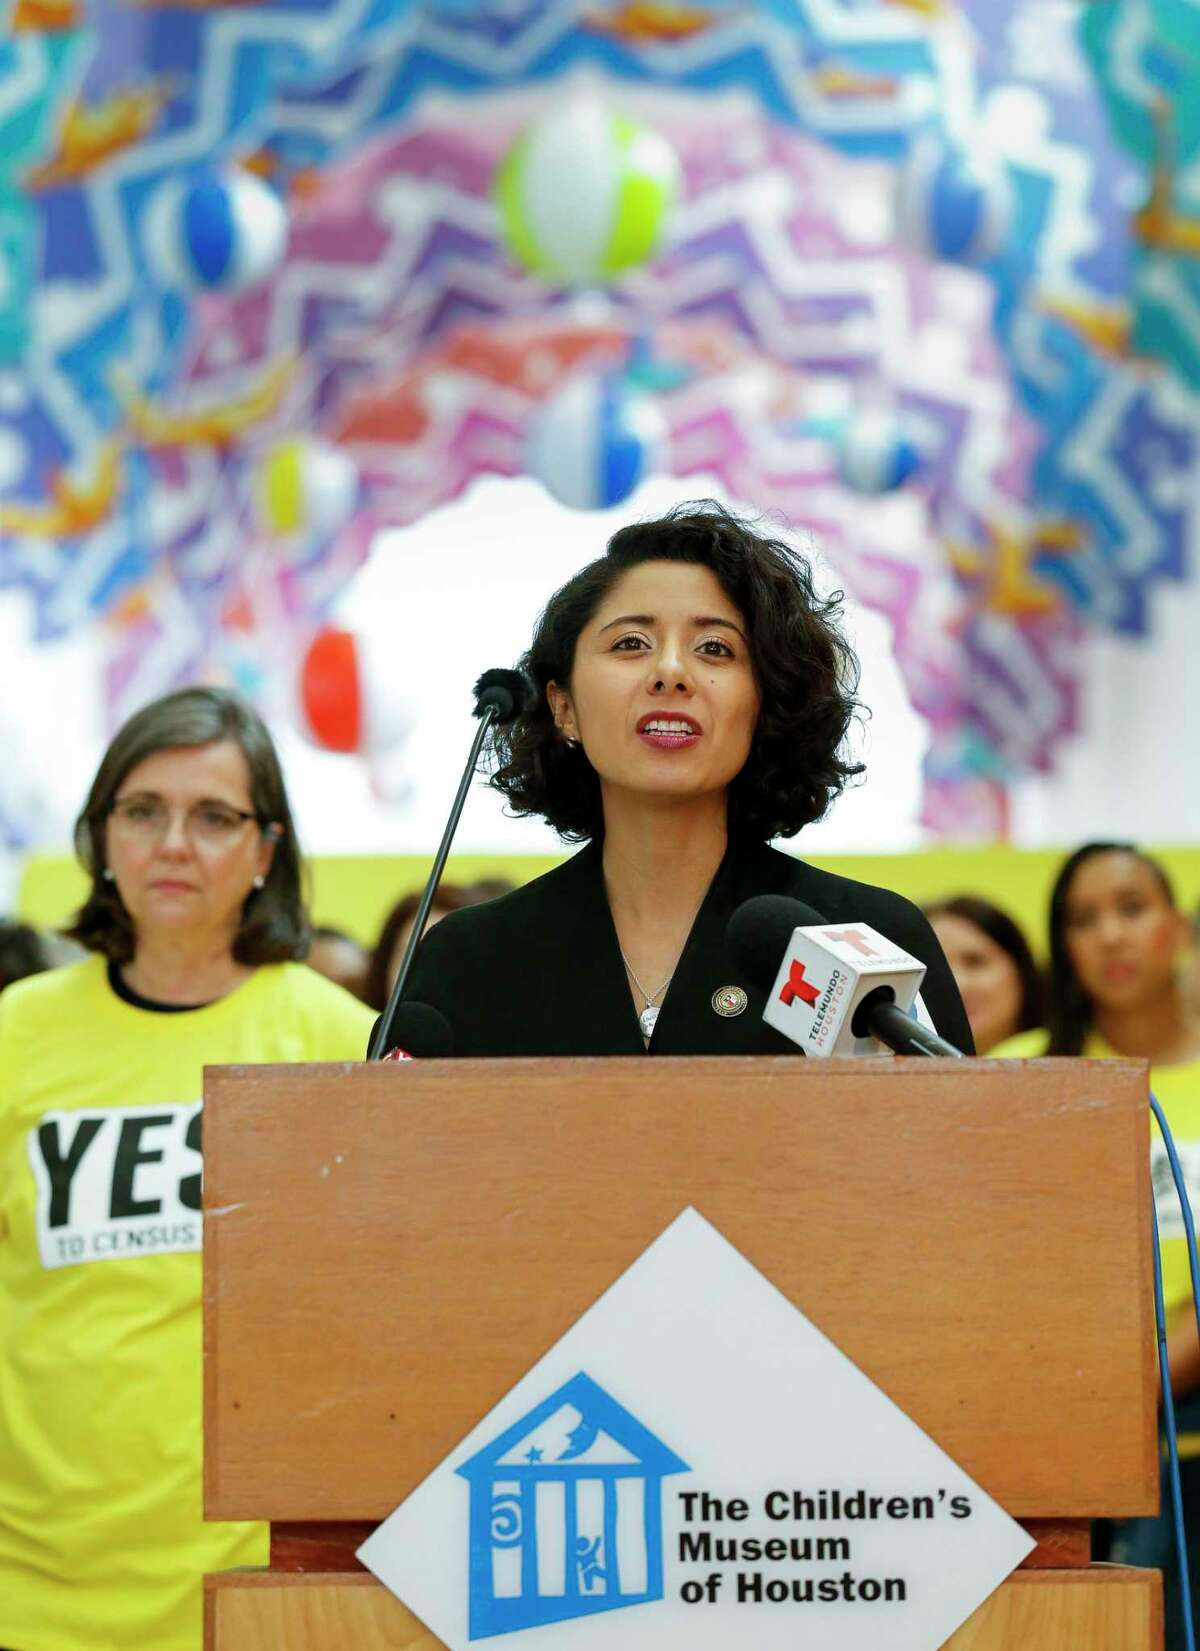 """Harris County judge Lina Hidalgo conducts a press conference inside the Children's Museum, kicking off the Houston and Harris County's census drive campaign """"Yes! to Census 2020,"""" Monday, March 2, 2020, in Houston."""